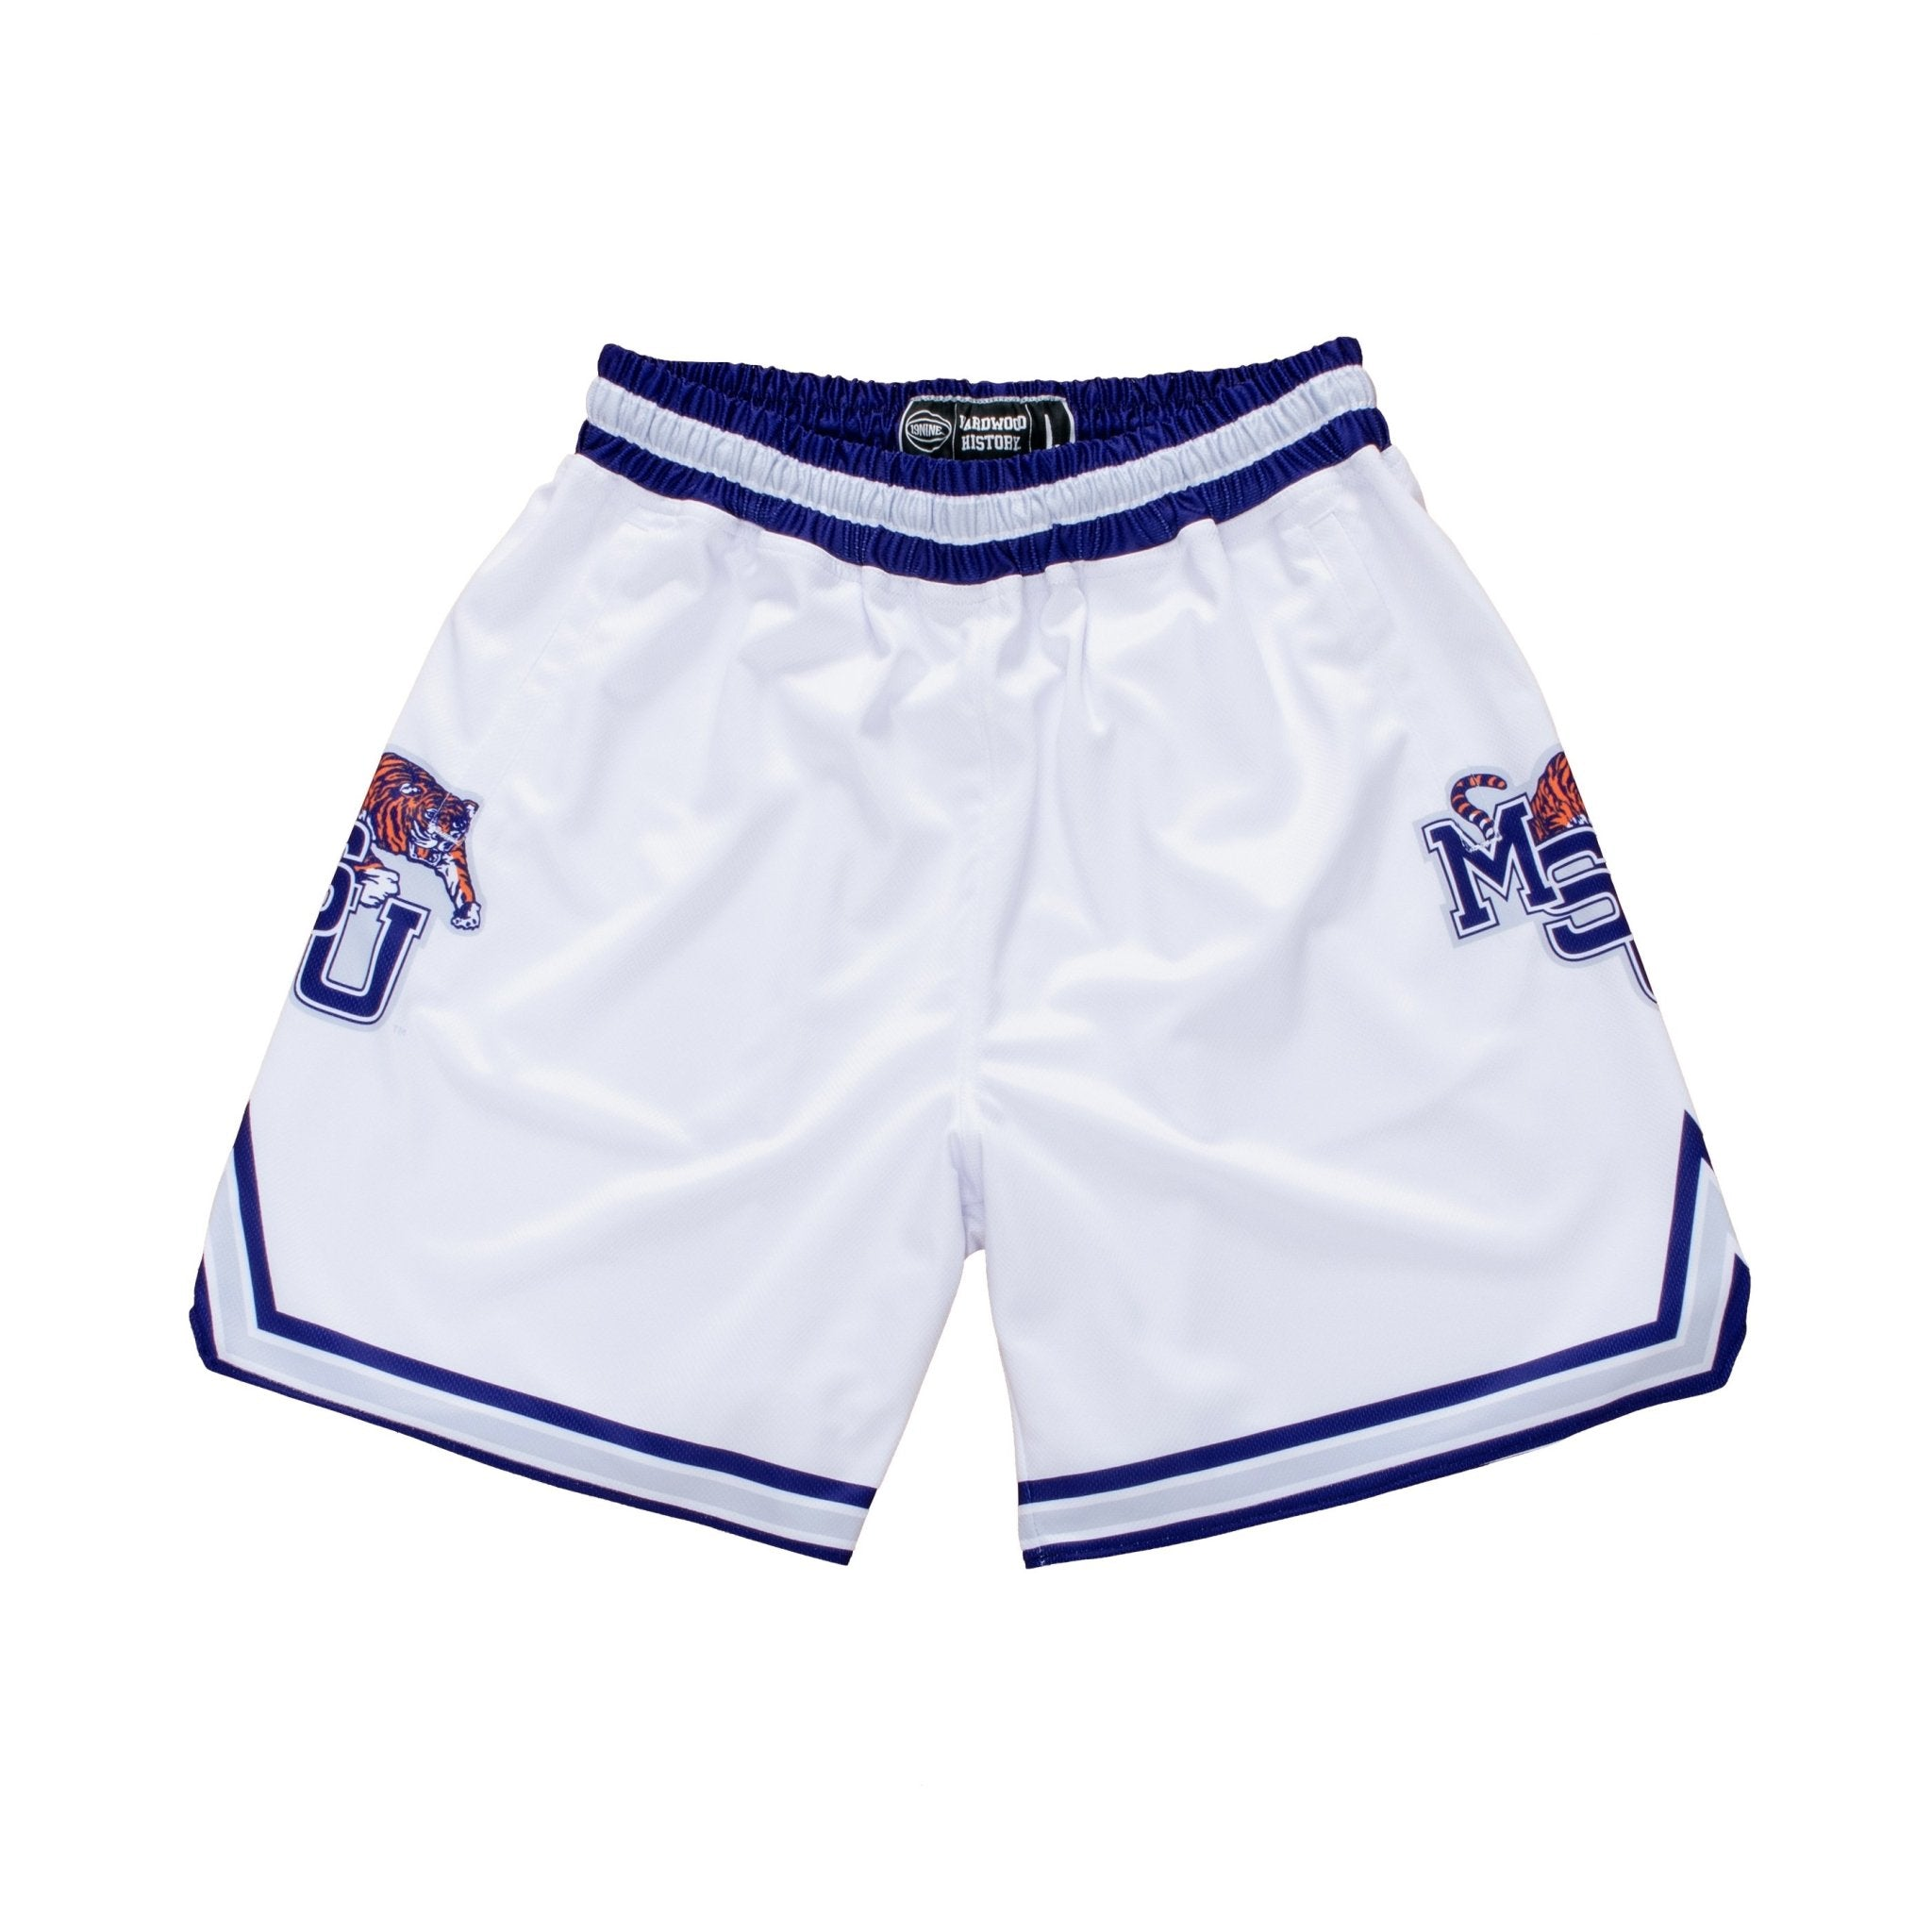 Memphis State Tigers 1991-1992 Retro Shorts - SLAM